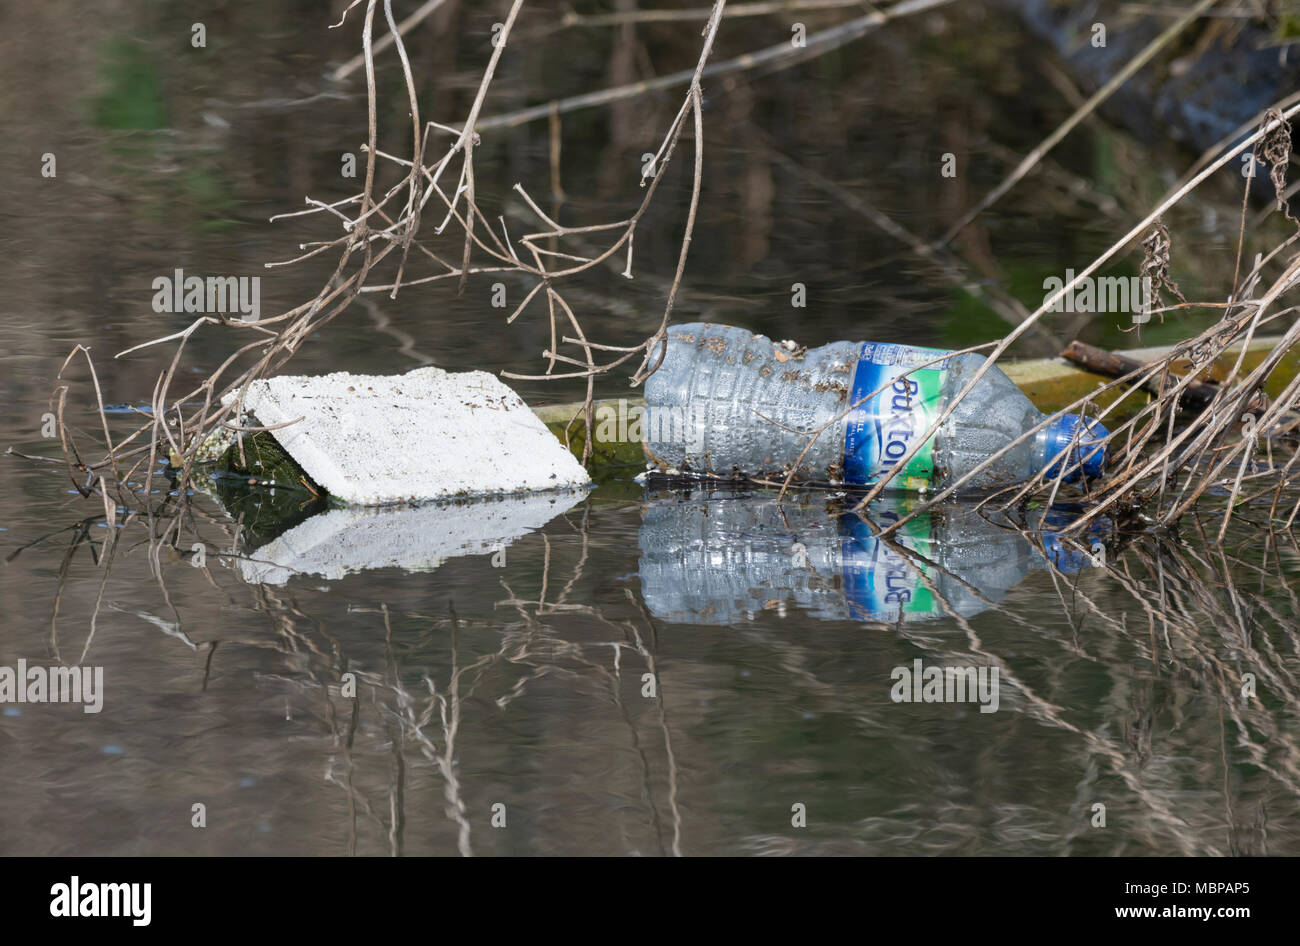 Discarded rubbish and a bottle floating in a stream. Littering UK. - Stock Image